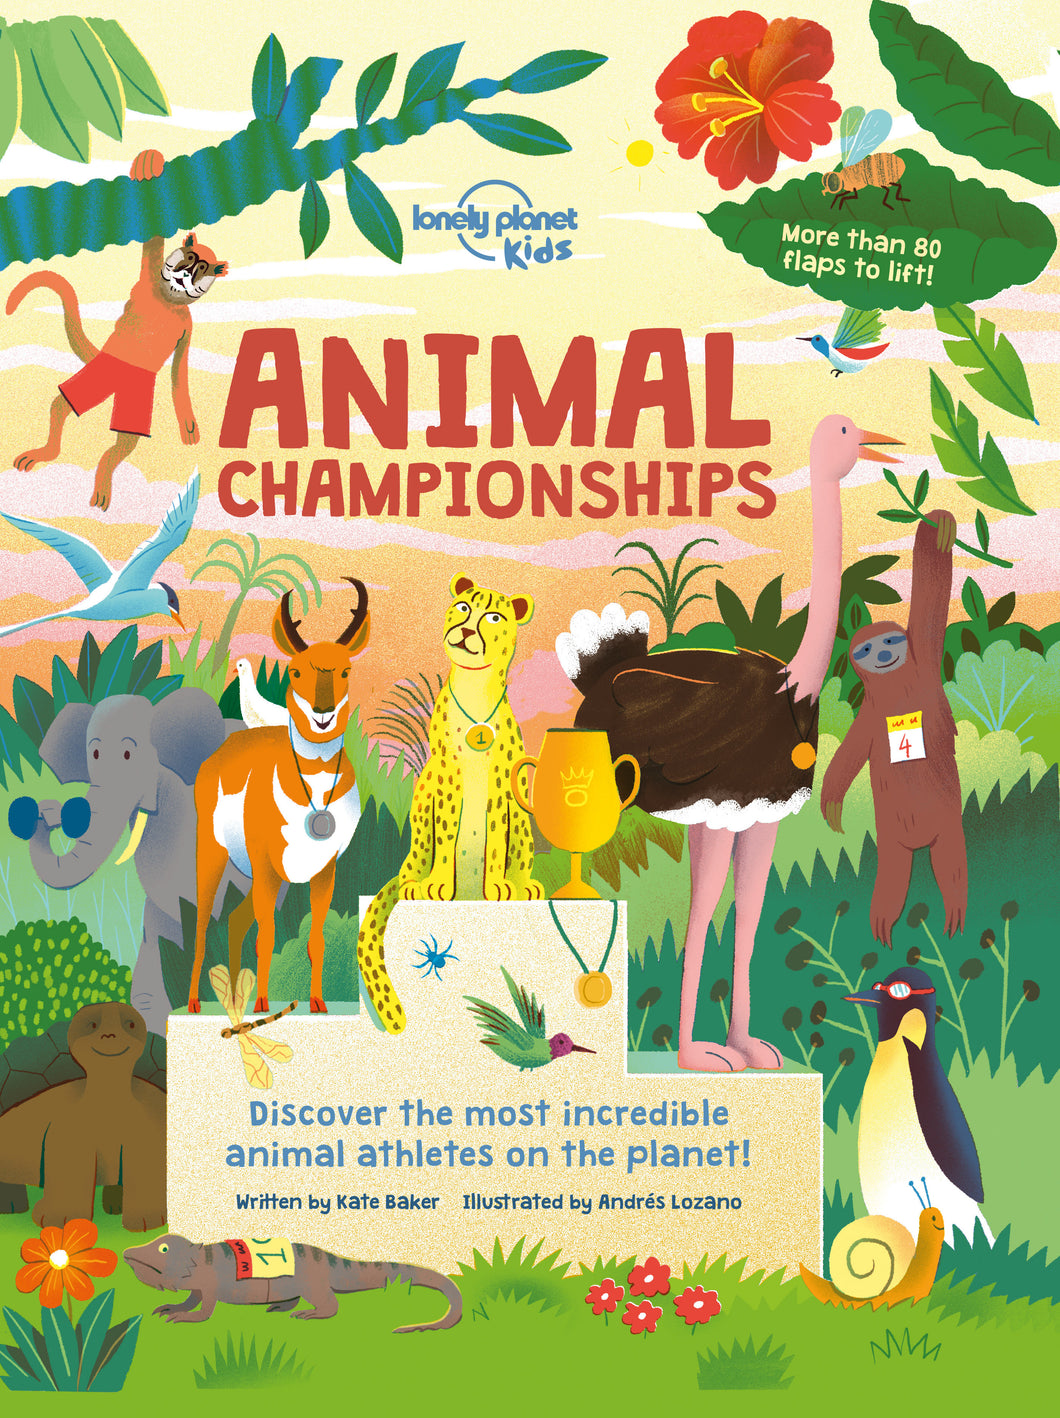 Animal Championships - More Than 80 Flaps to Lift!